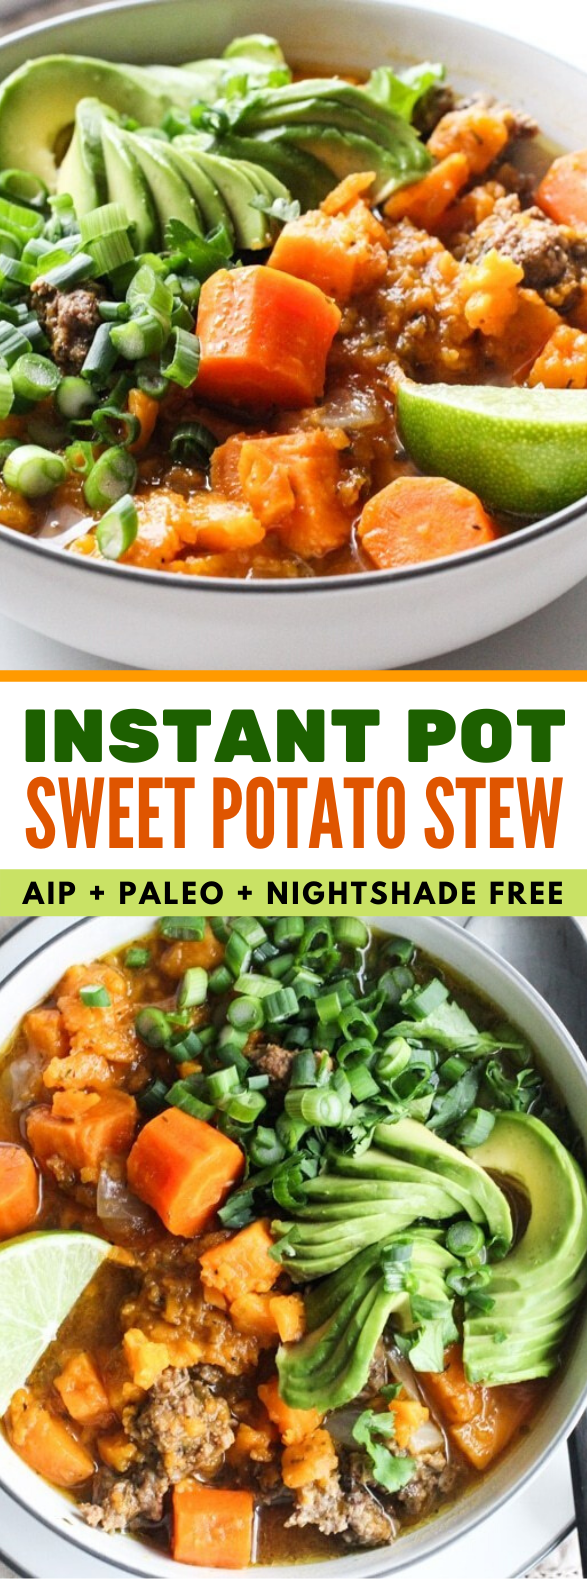 EASY INSTANT POT STEW WITH BEEF & SWEET POTATOES (AIP, PALEO) #healthy #antiinflammatory